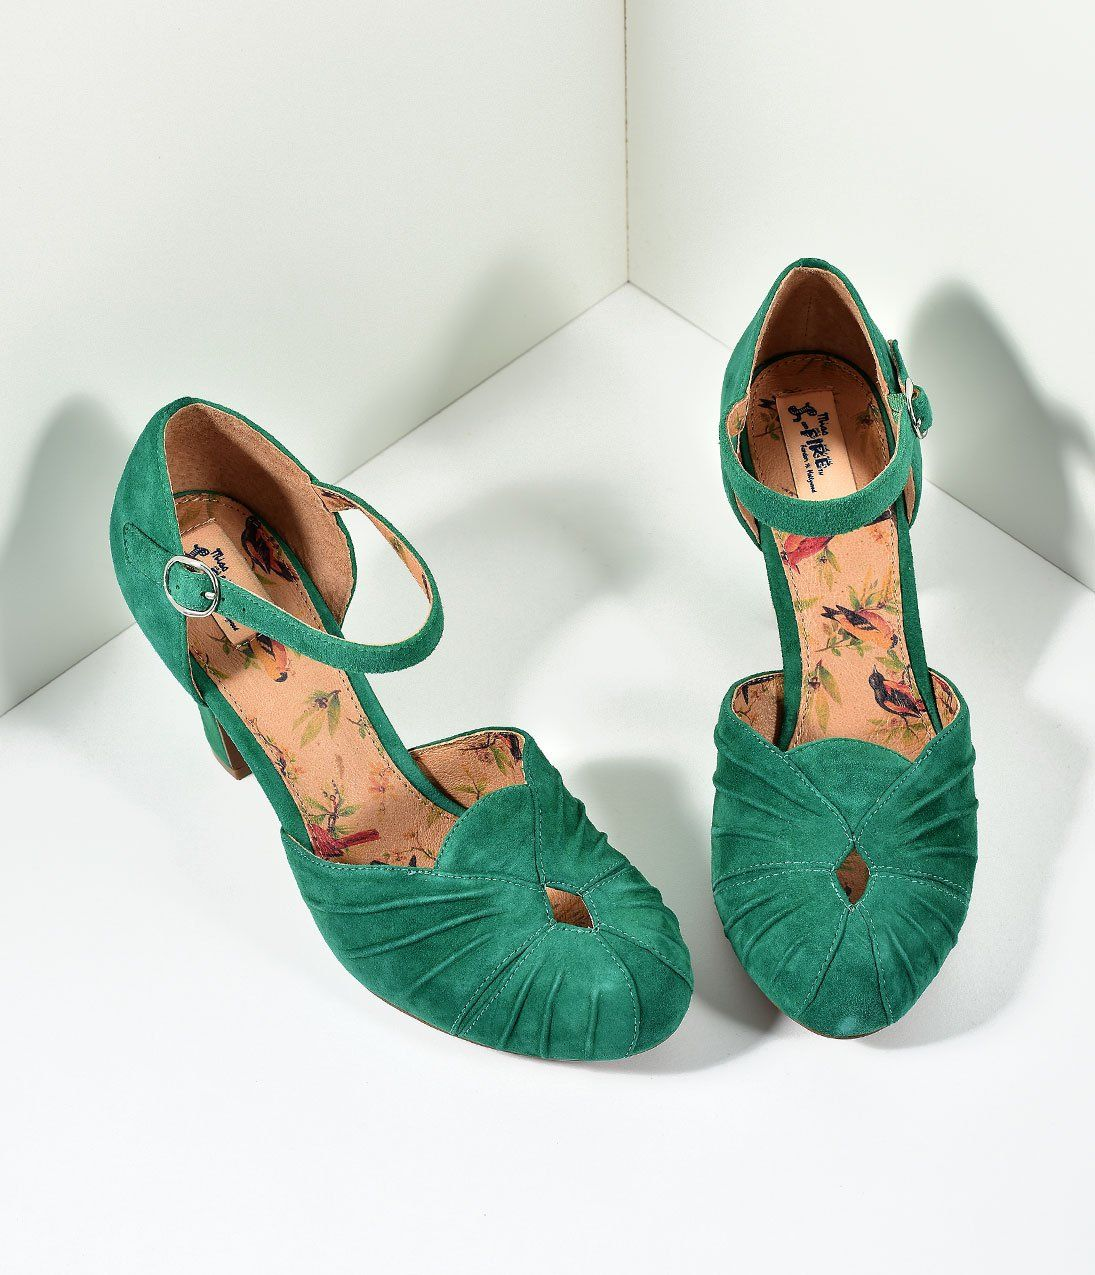 9b846167cb9 Miss L Fire 1940s Style Emerald Green Suede Keyhole Amber Heels ...